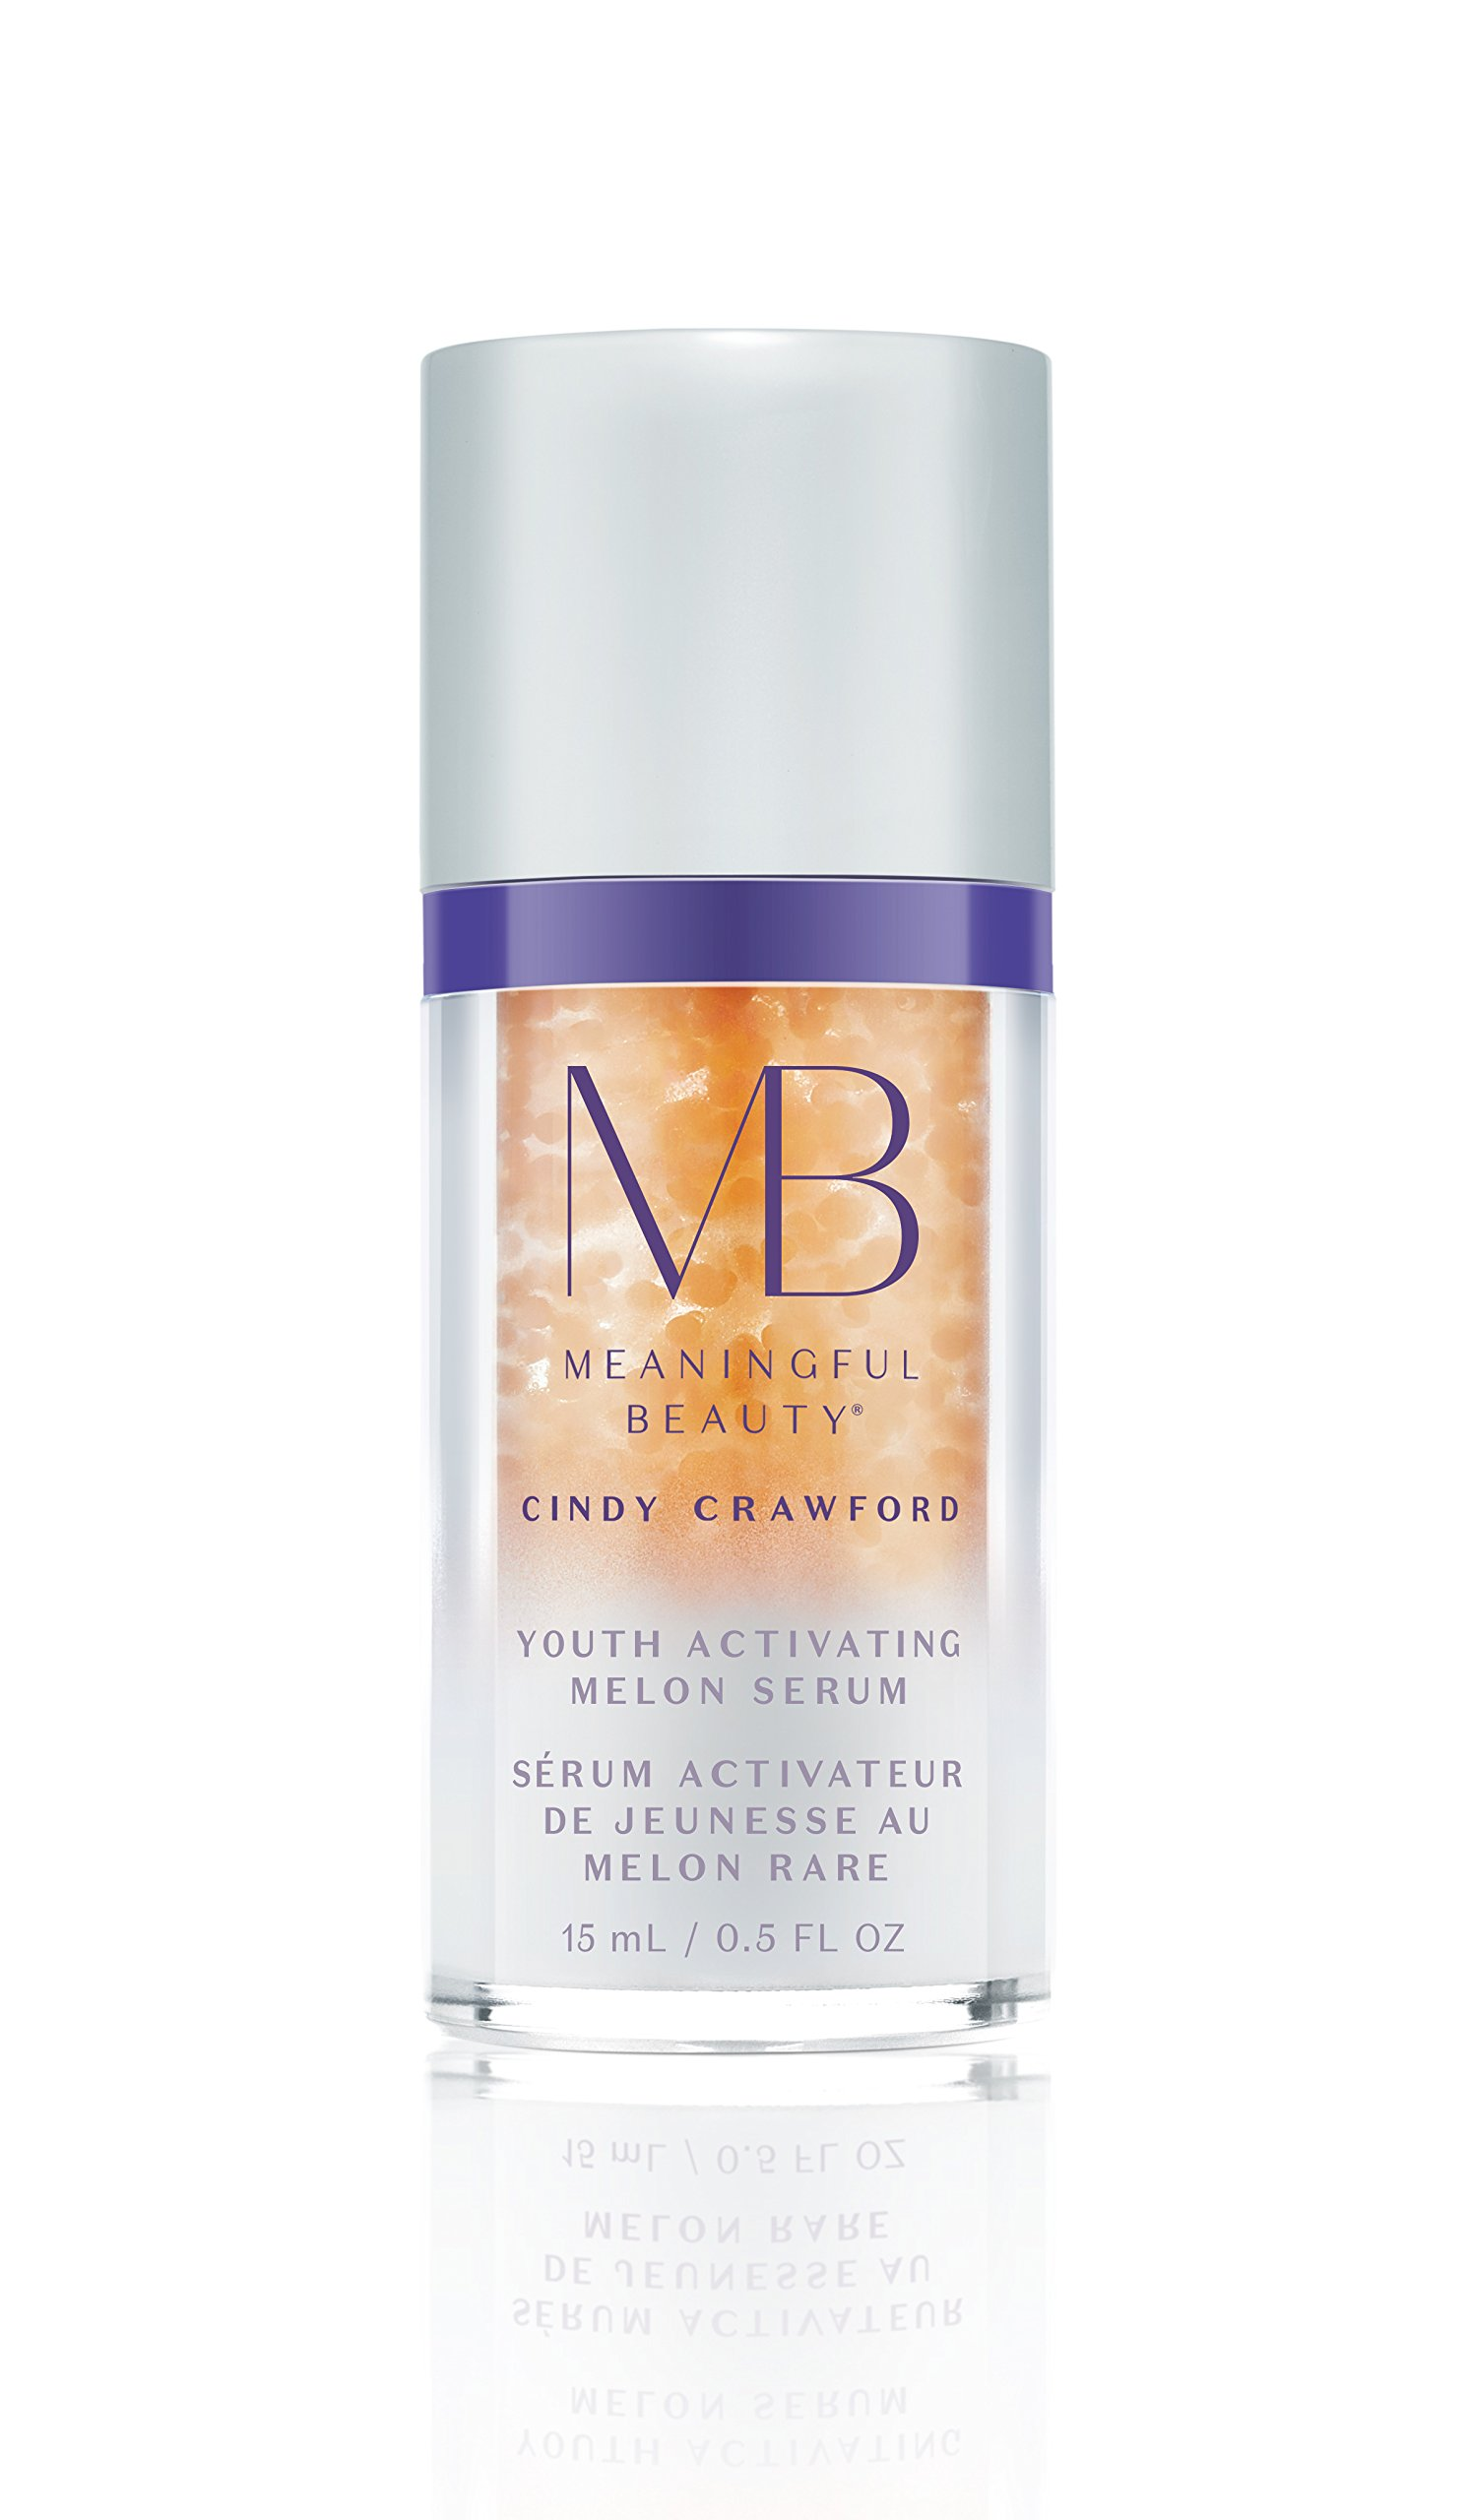 Meaningful Beauty Beyond - Youth Activating Melon Serum - Peptide Infused Melon Leaf Stem Cell Facial Treatment - Travel Size 30 Day Supply/0.5 Ounce - MT.2113